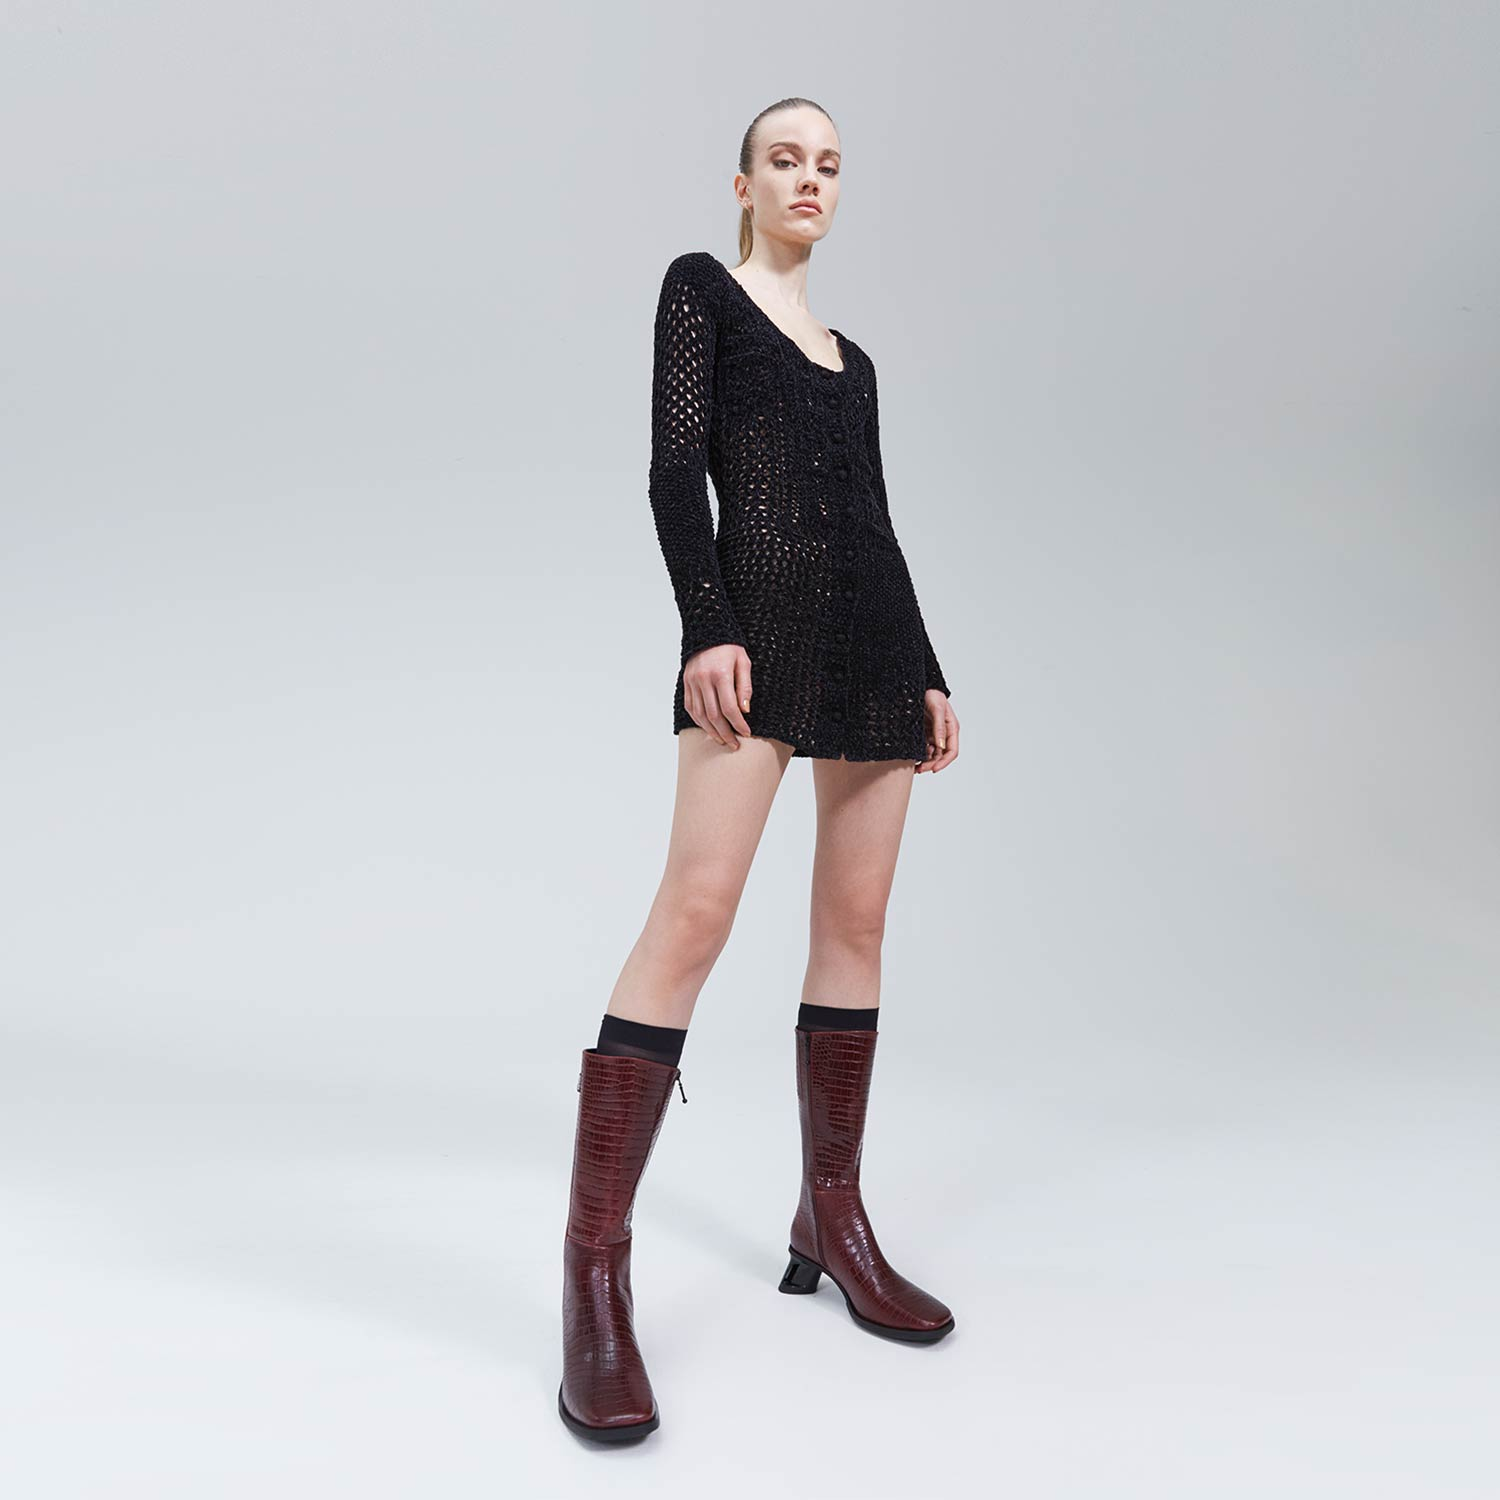 Faye Dress by eytys, available on eytys.com Bella Hadid Outerwear Exact Product